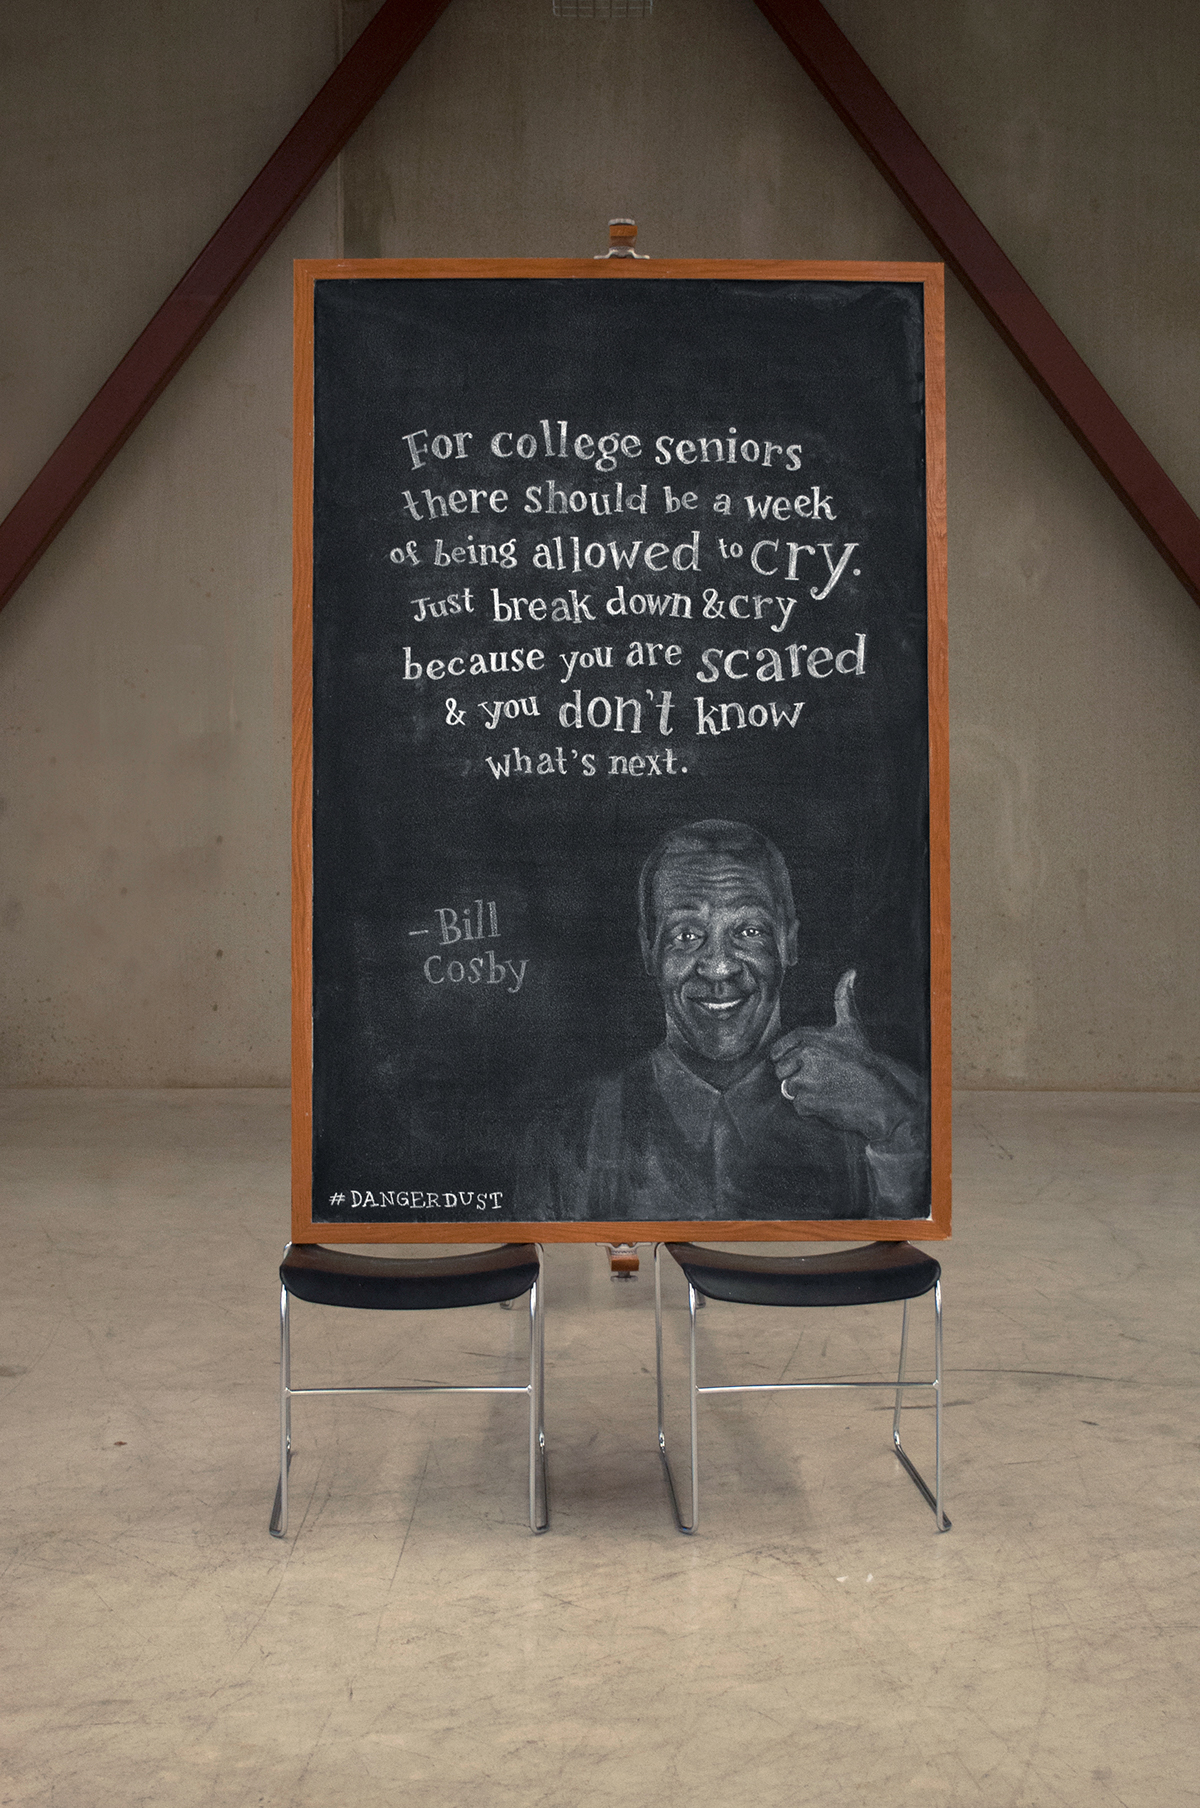 """WEEK 8 - Bill Cosby """"For college seniors there should be a week of being allowed to cry. Just break down & cry because you are scared and don't know what's next."""""""